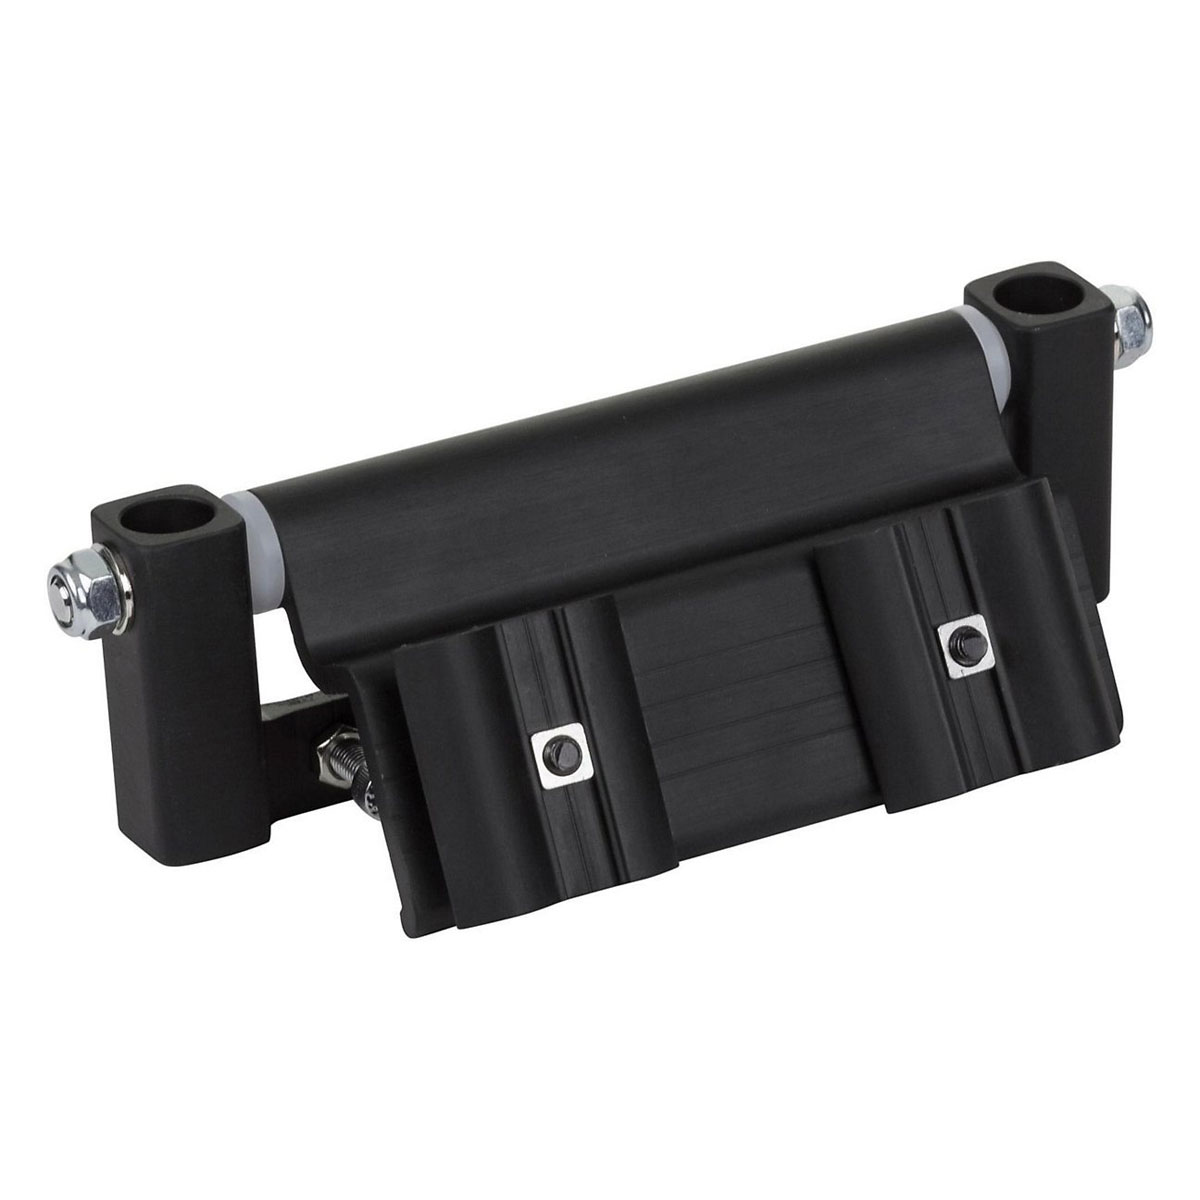 Pearl Marching Snare Attachment for CXS1 and MXSP1 Carriers